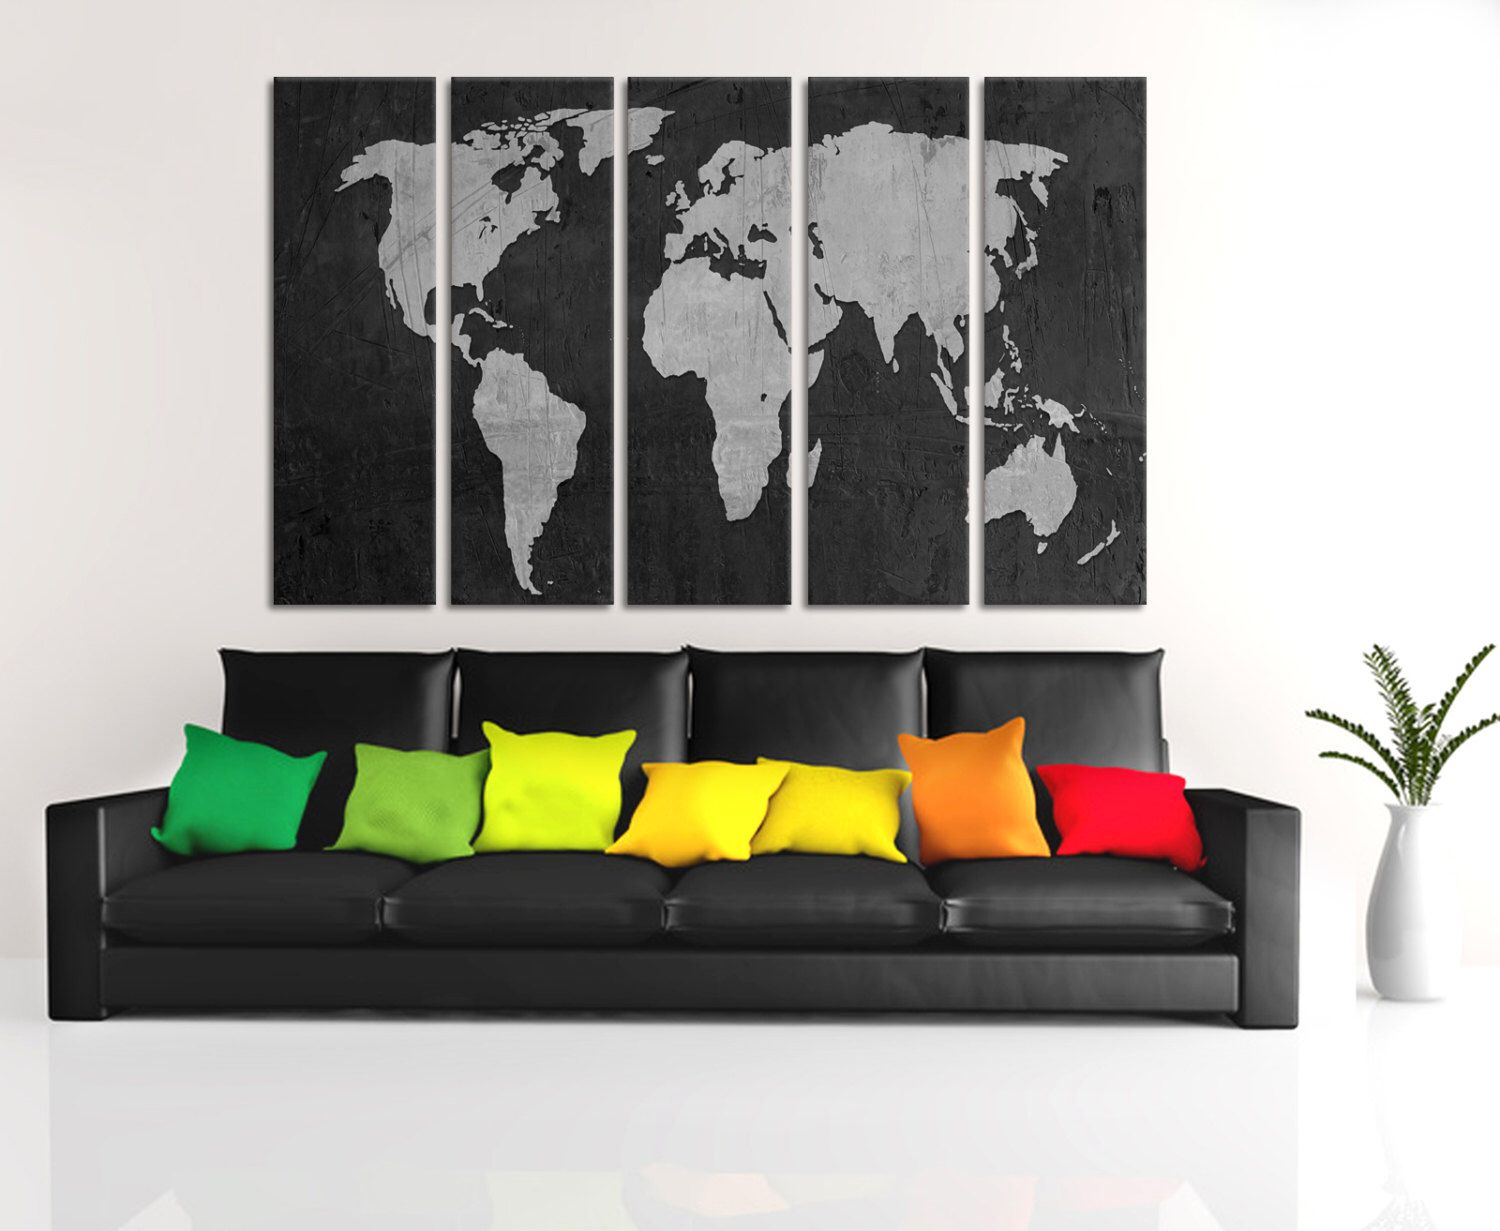 Black and white world map 5 panel split canvas print large black and white world map 5 panel split canvas print large stretched on 15 gumiabroncs Image collections